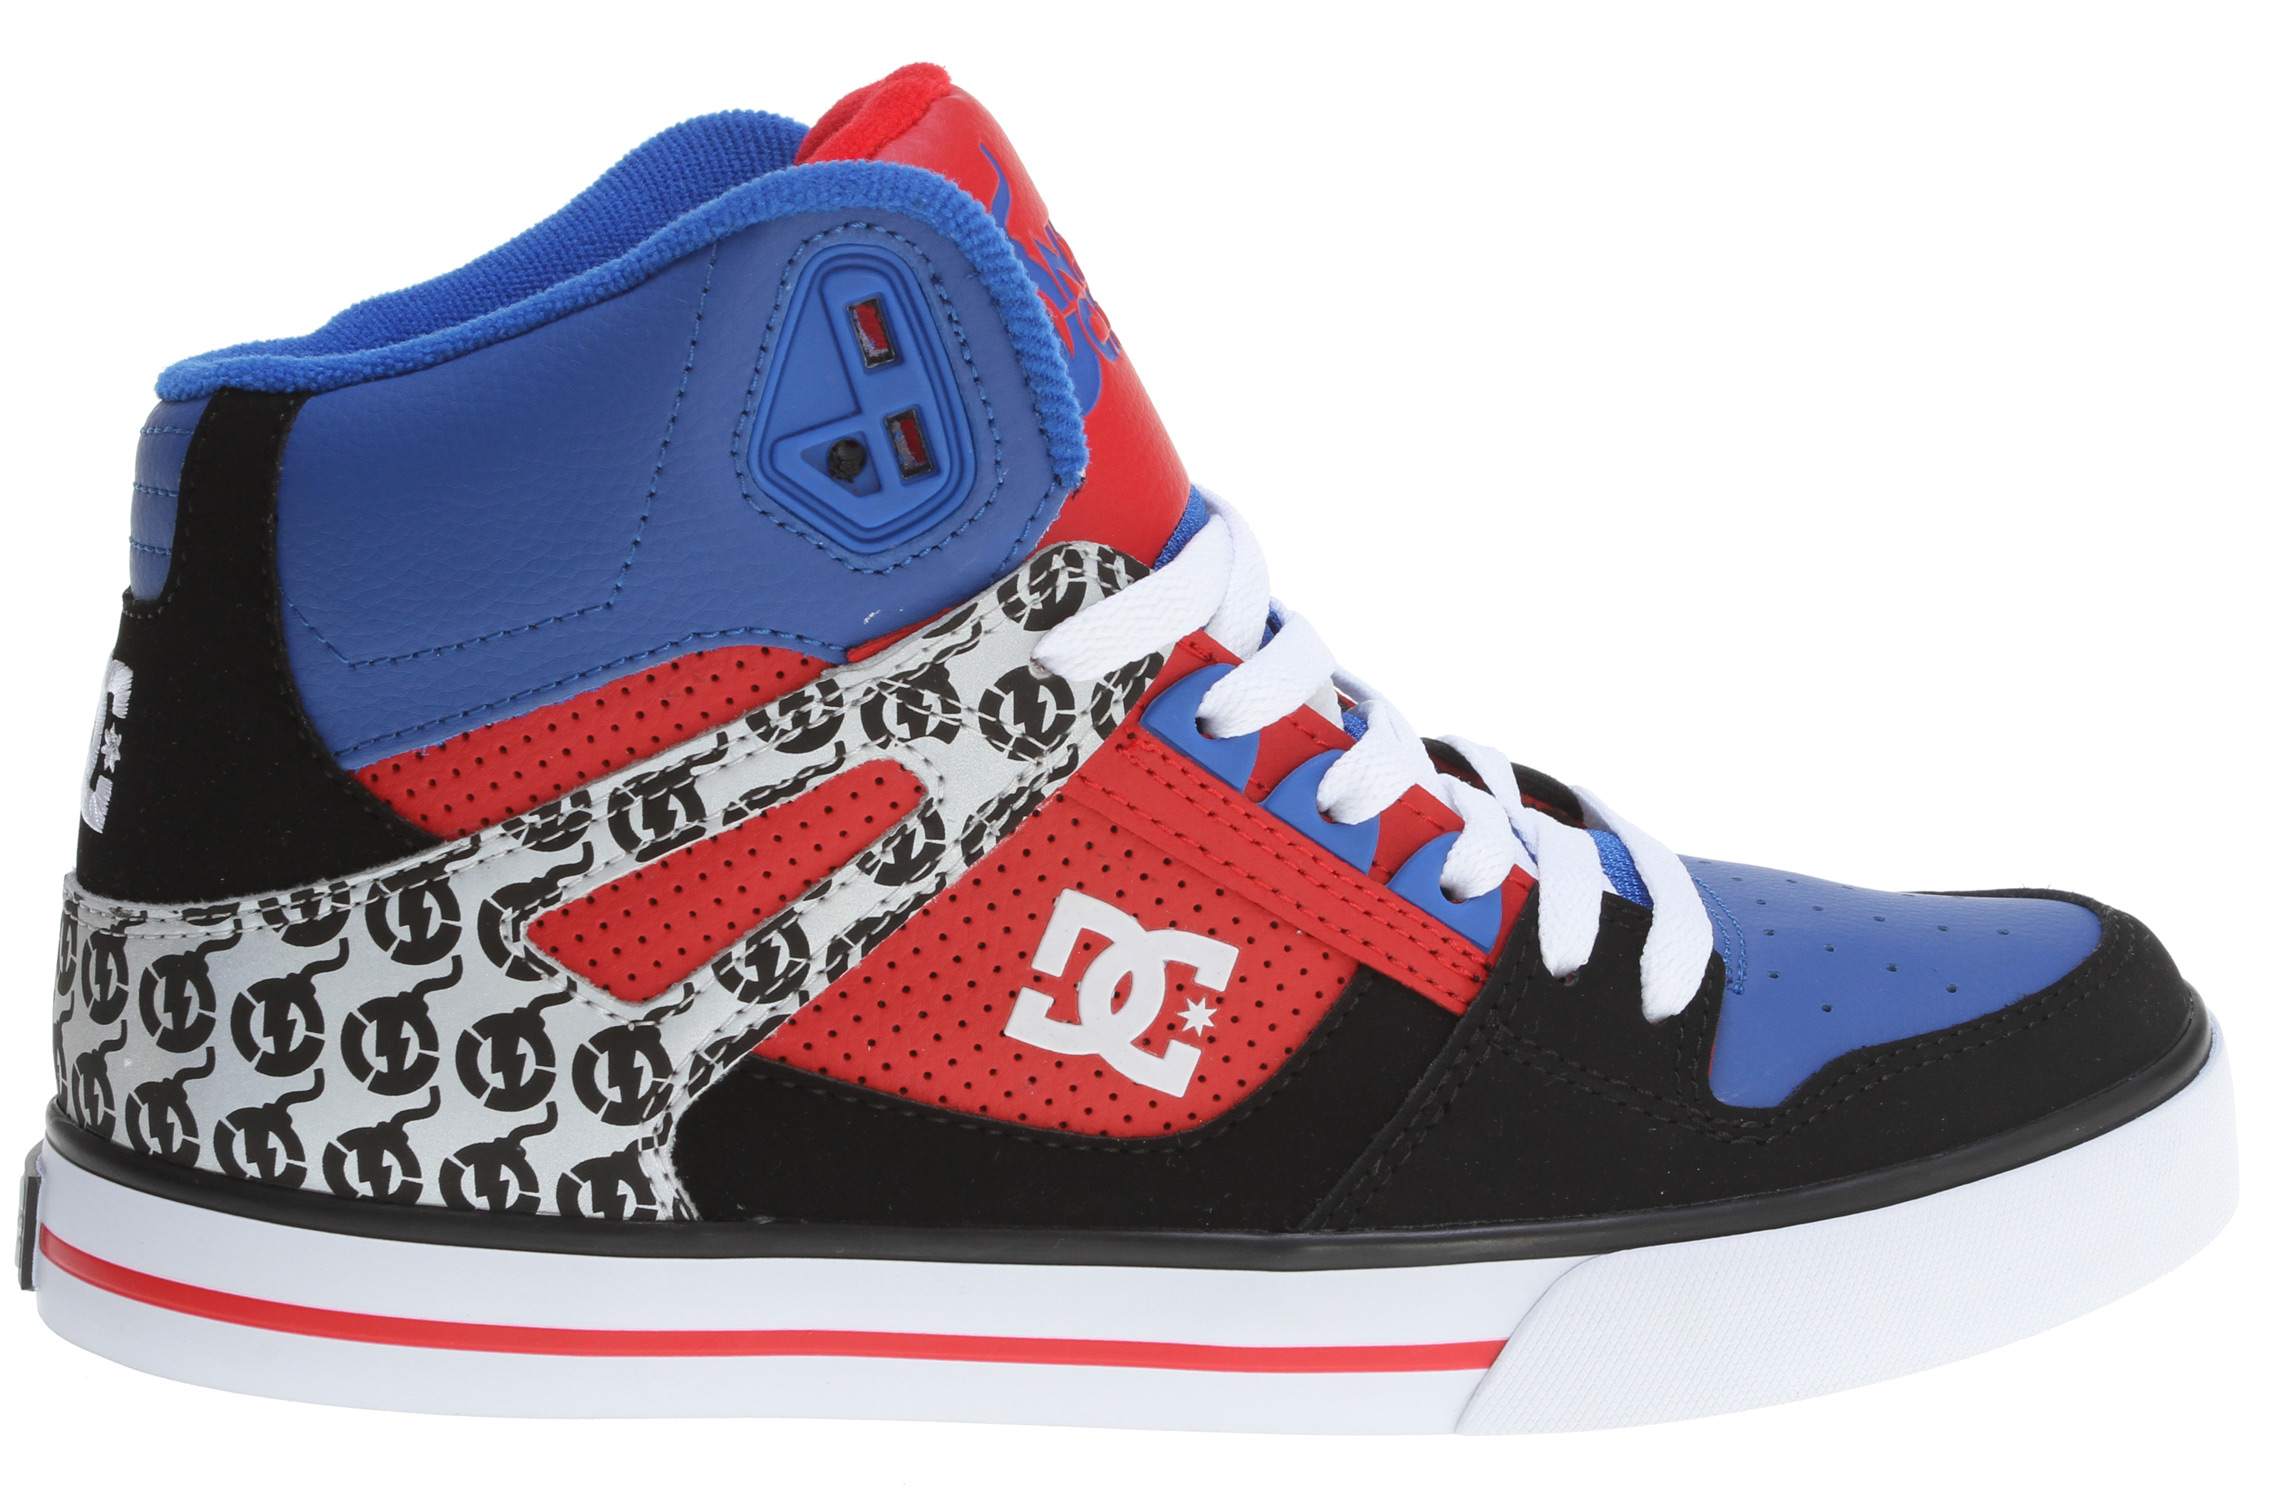 Skateboard Key Features of the DC Spartan Hi WC Nitro Circus Skate Shoes: Colorway inspired by the cast of Nitro Circus Reflective ankle strap Foam padded tongue and collar Vent holes in upper TPU eyelets Performance rubber wrap cupsole Abrasion resistant sticky rubber outsole - $55.95